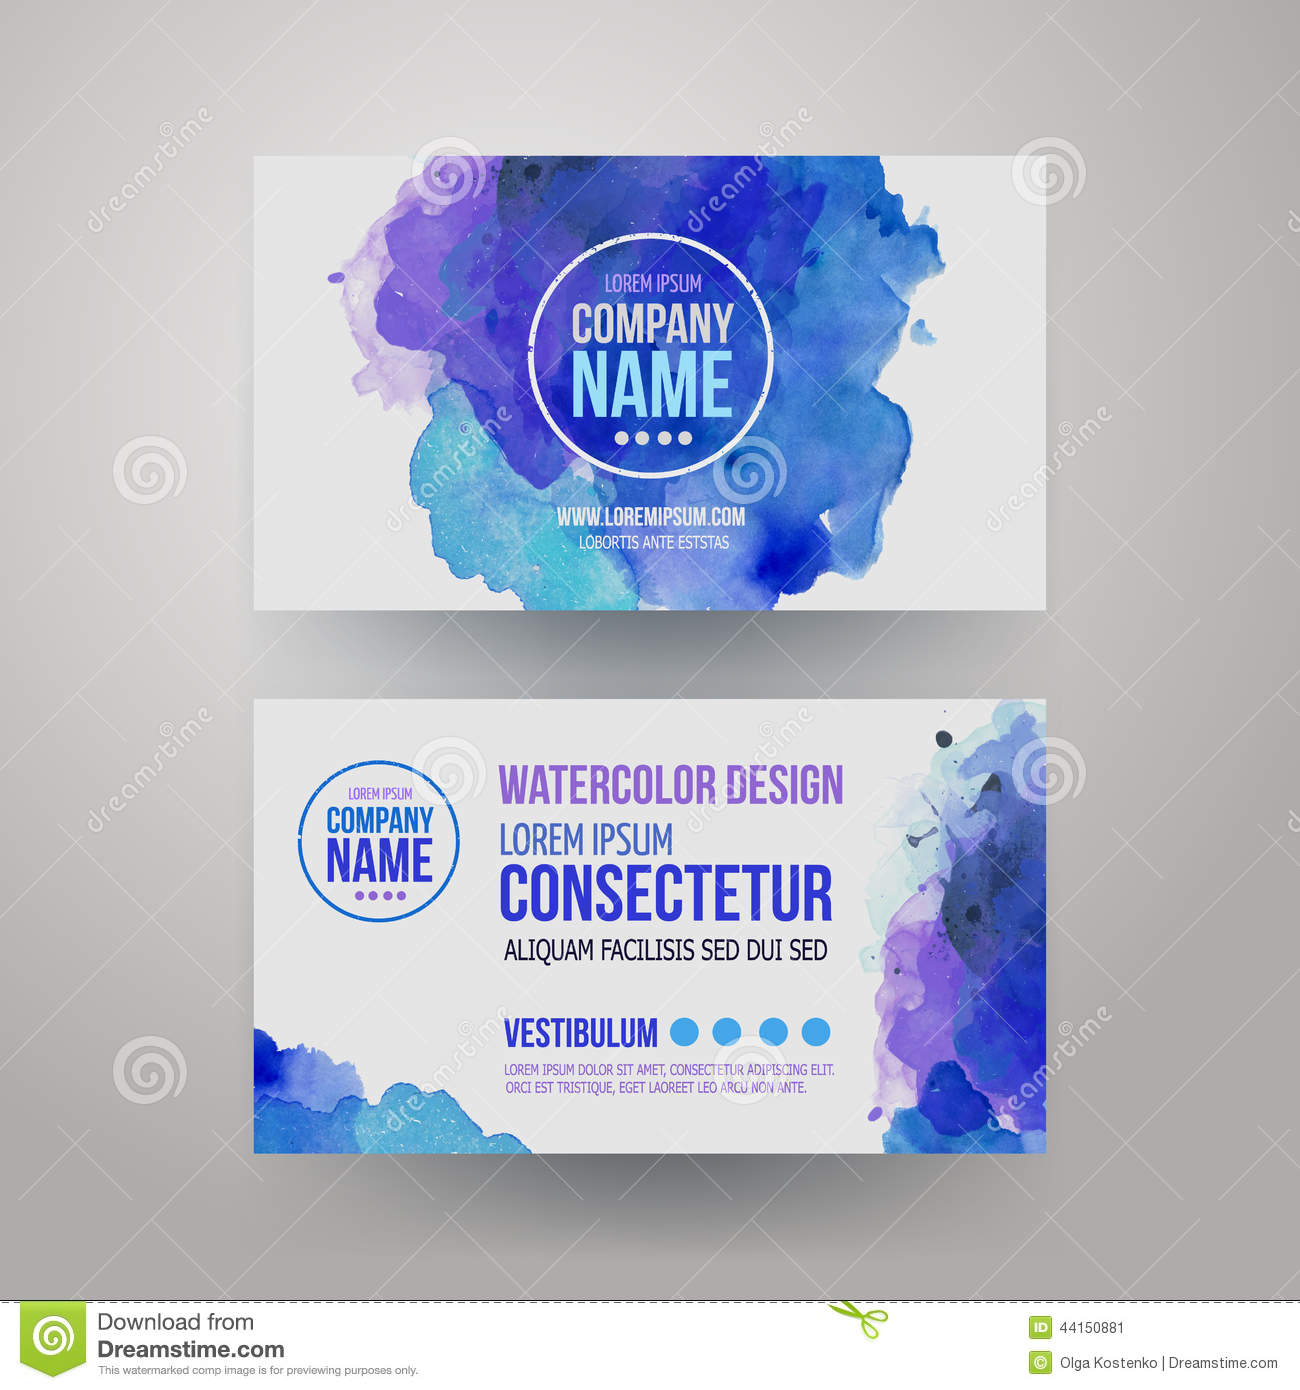 Adobe Illustrator Business Card Templates Business Card Sample - Adobe illustrator business card template download